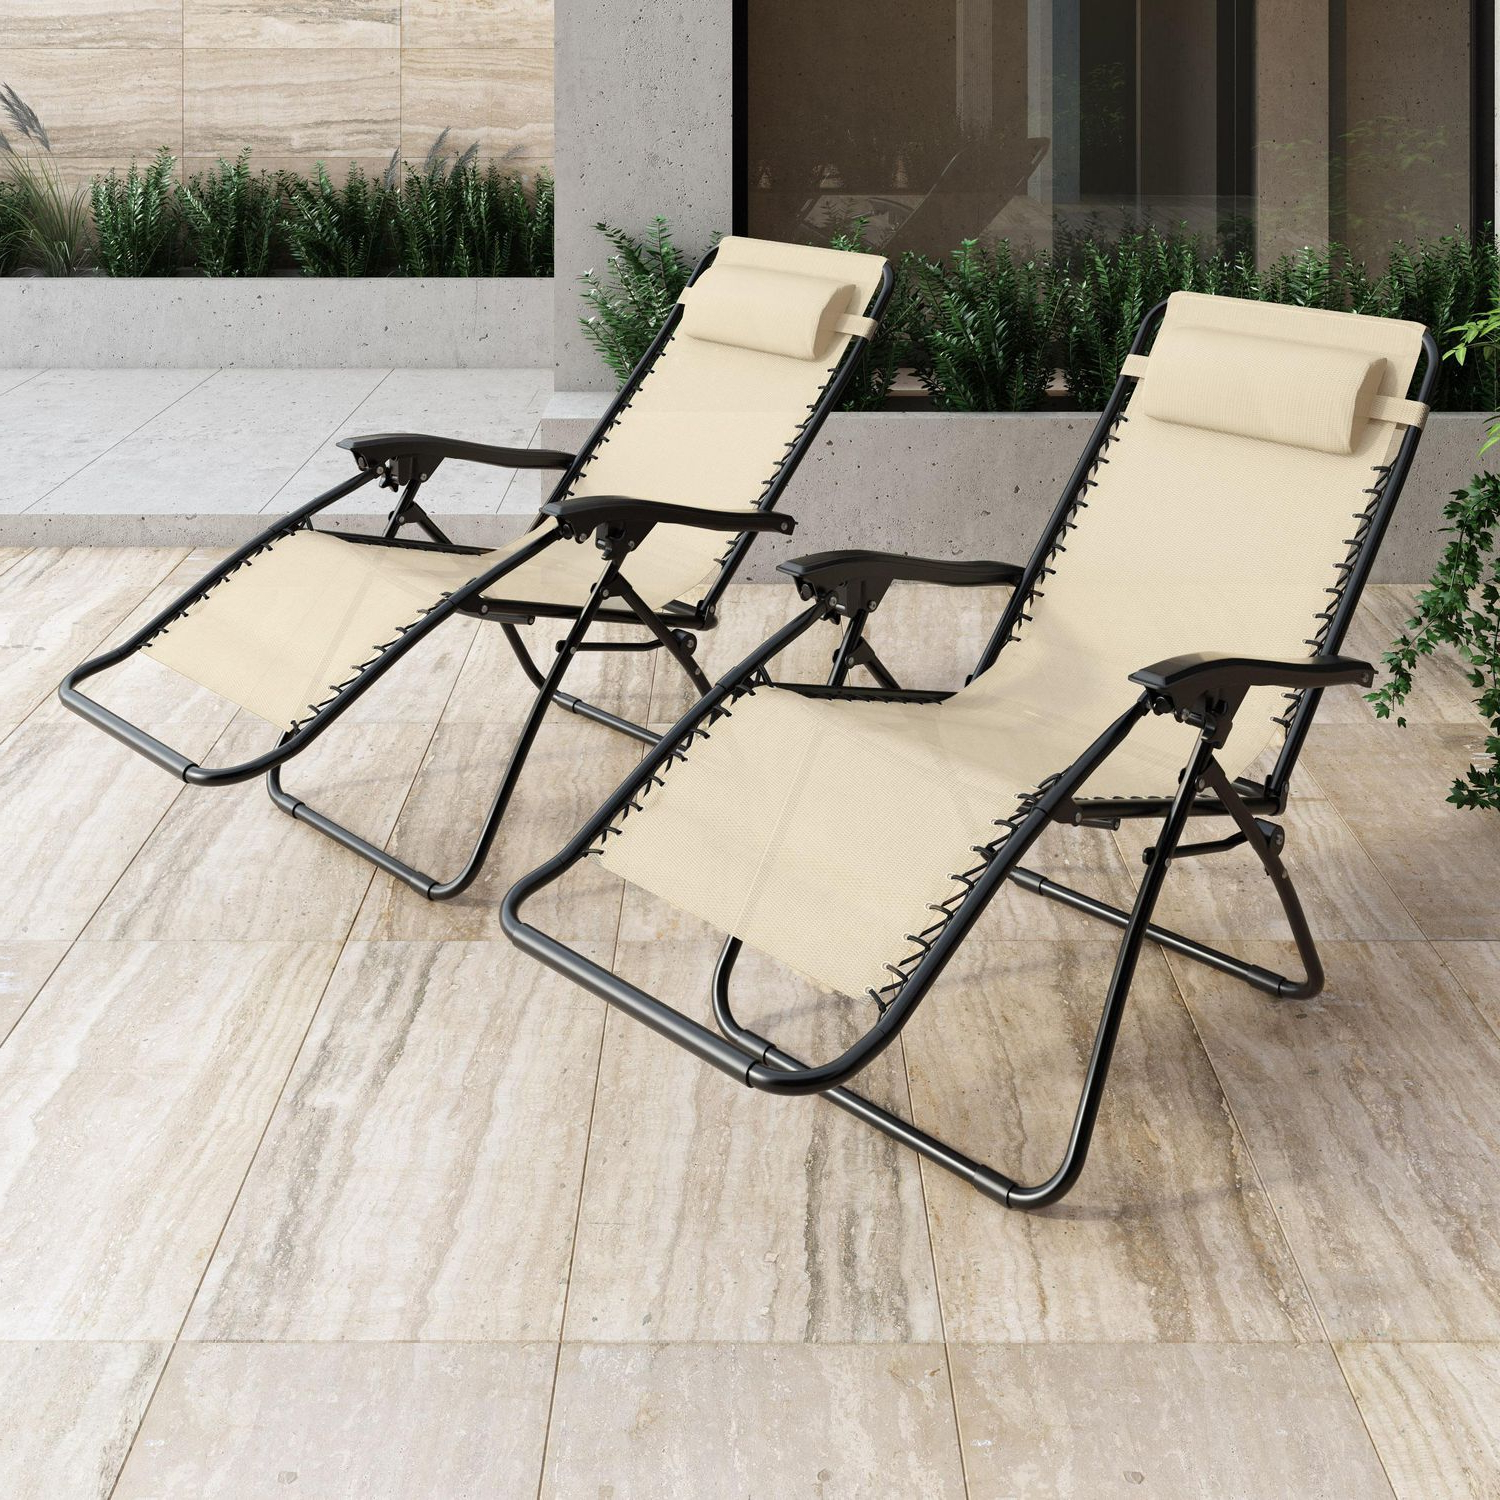 Widely Used Corliving Riverside Textured Loungers Inside Corliving Riverside Textured Mesh Zero Gravity Patio Lounger, Set Of 2 (Gallery 8 of 25)